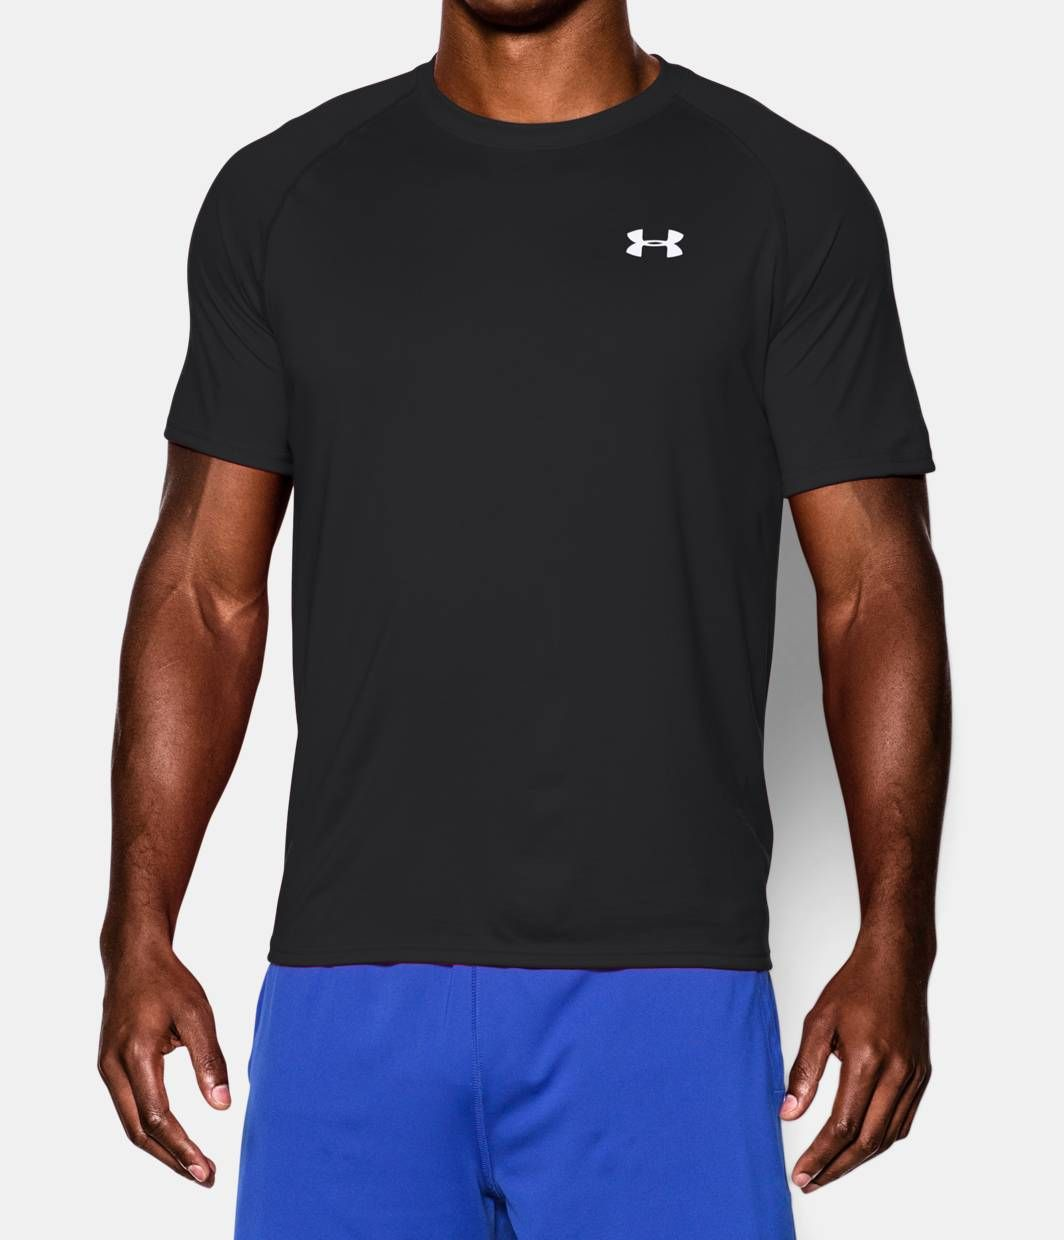 Men's UA Tech™ Short Sleeve T-Shirt | Under Armour US. Under Armour MenWorkout  ShirtsMens ...